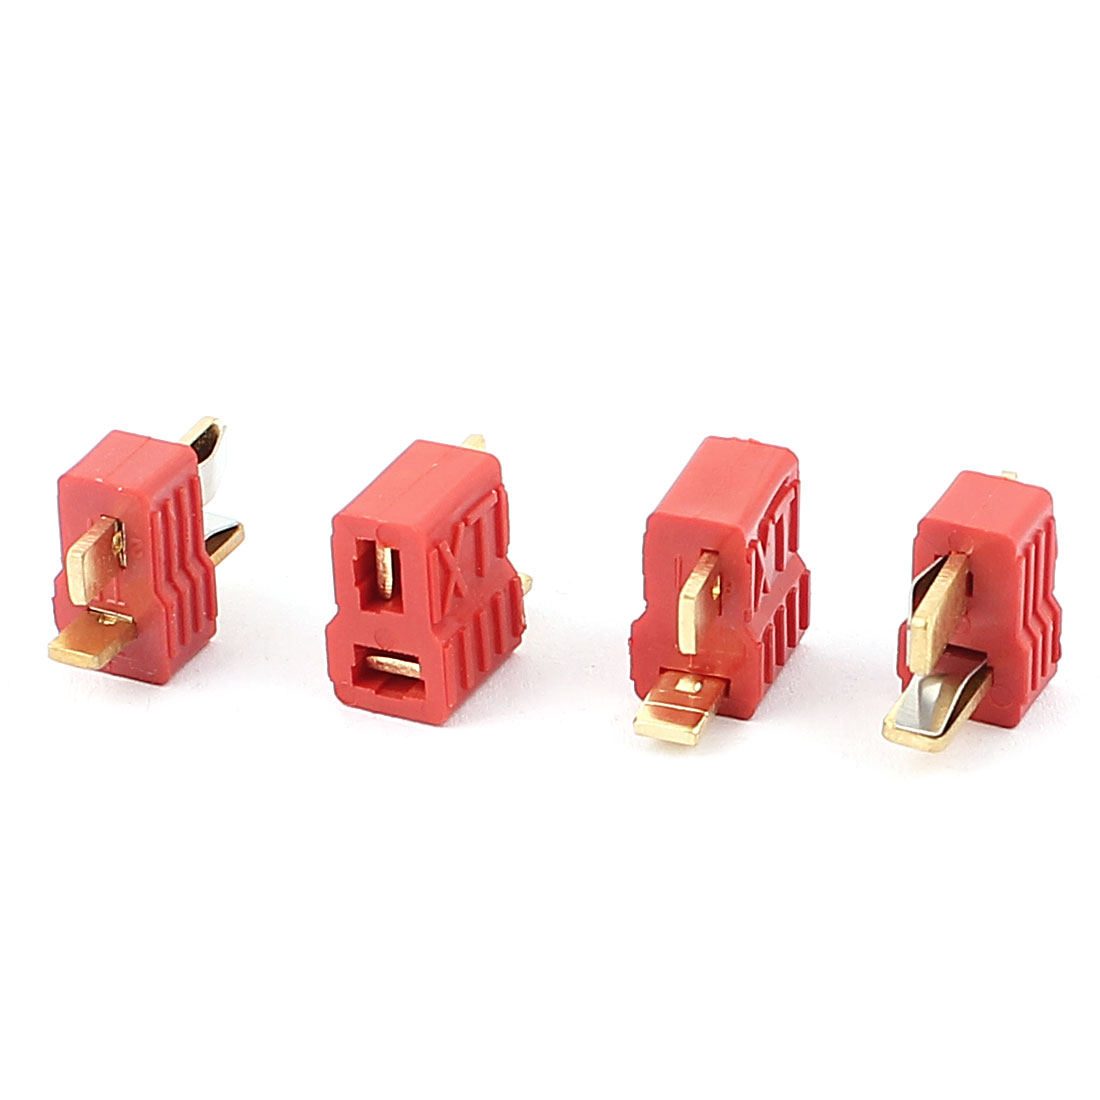 2 Pairs Red Gold Tone T Male to Female Connector for RC Model Toy